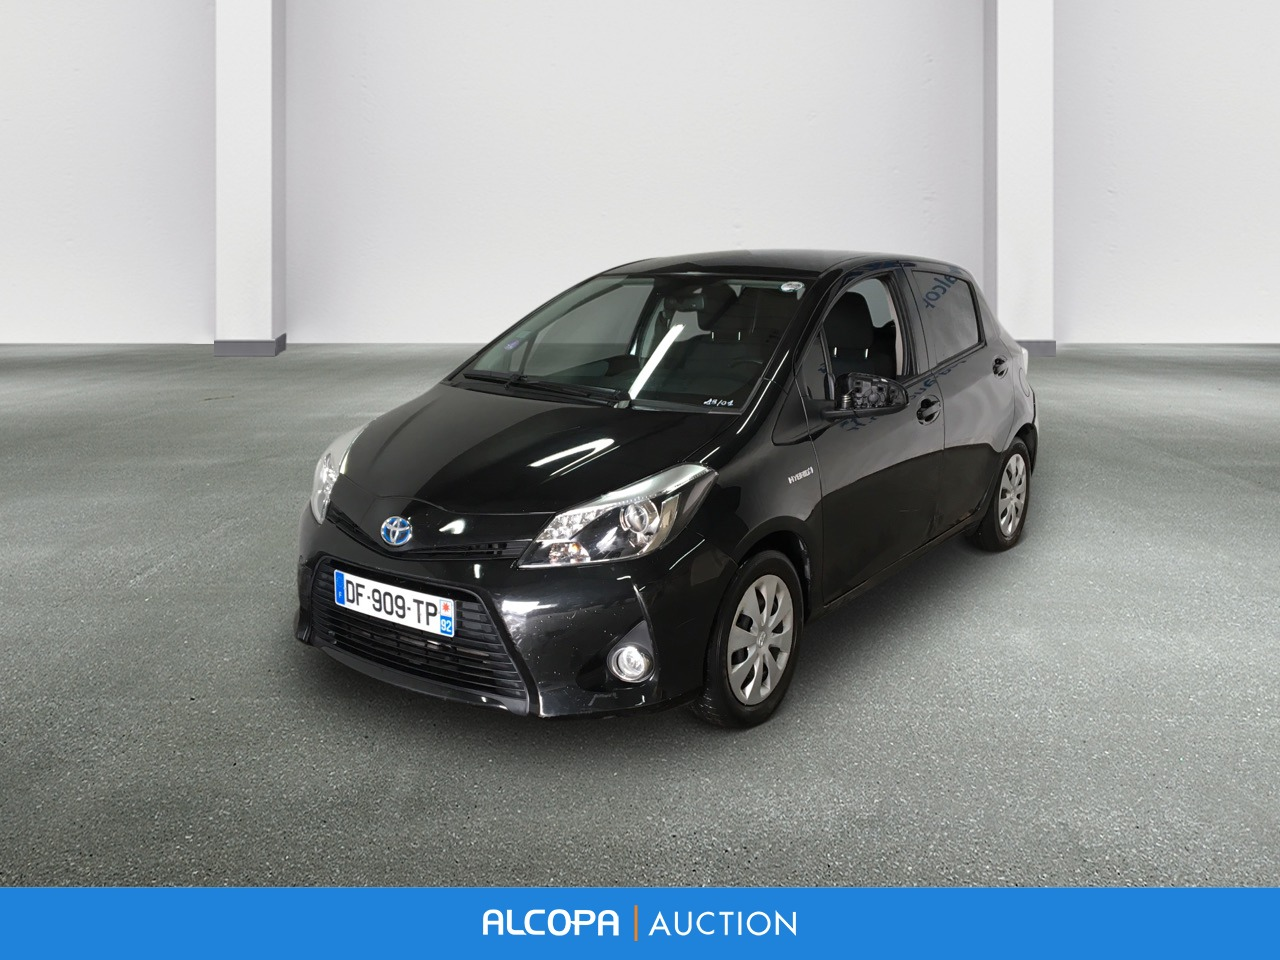 toyota yaris hybride business yaris 100h dynamic alcopa auction. Black Bedroom Furniture Sets. Home Design Ideas